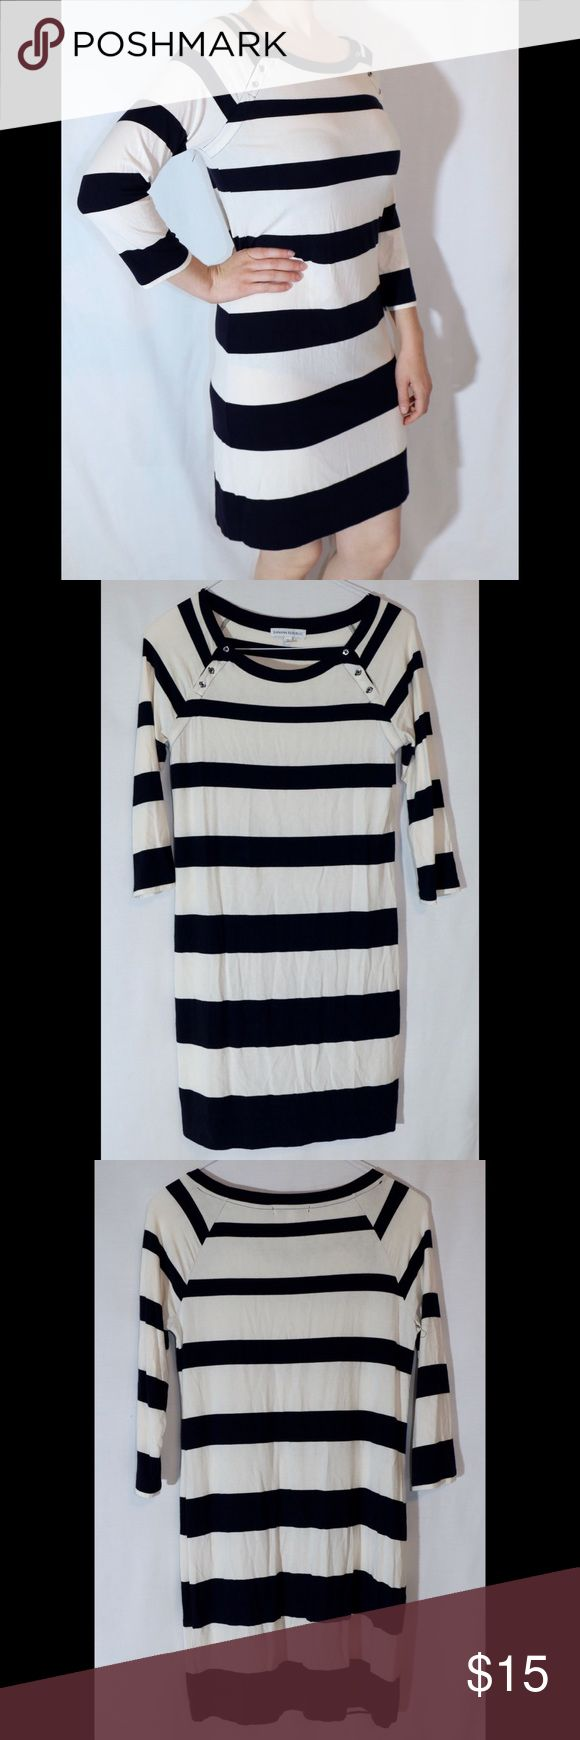 Navy and white striped dress Long sleeved dress with bold stripes in navy and white. Technically a small but really fits better for a medium. Threads are starting to come loose under one arm, probably a quick fix if you have skills with a needle and thread or sewing machine. Banana Republic Dresses Long Sleeve